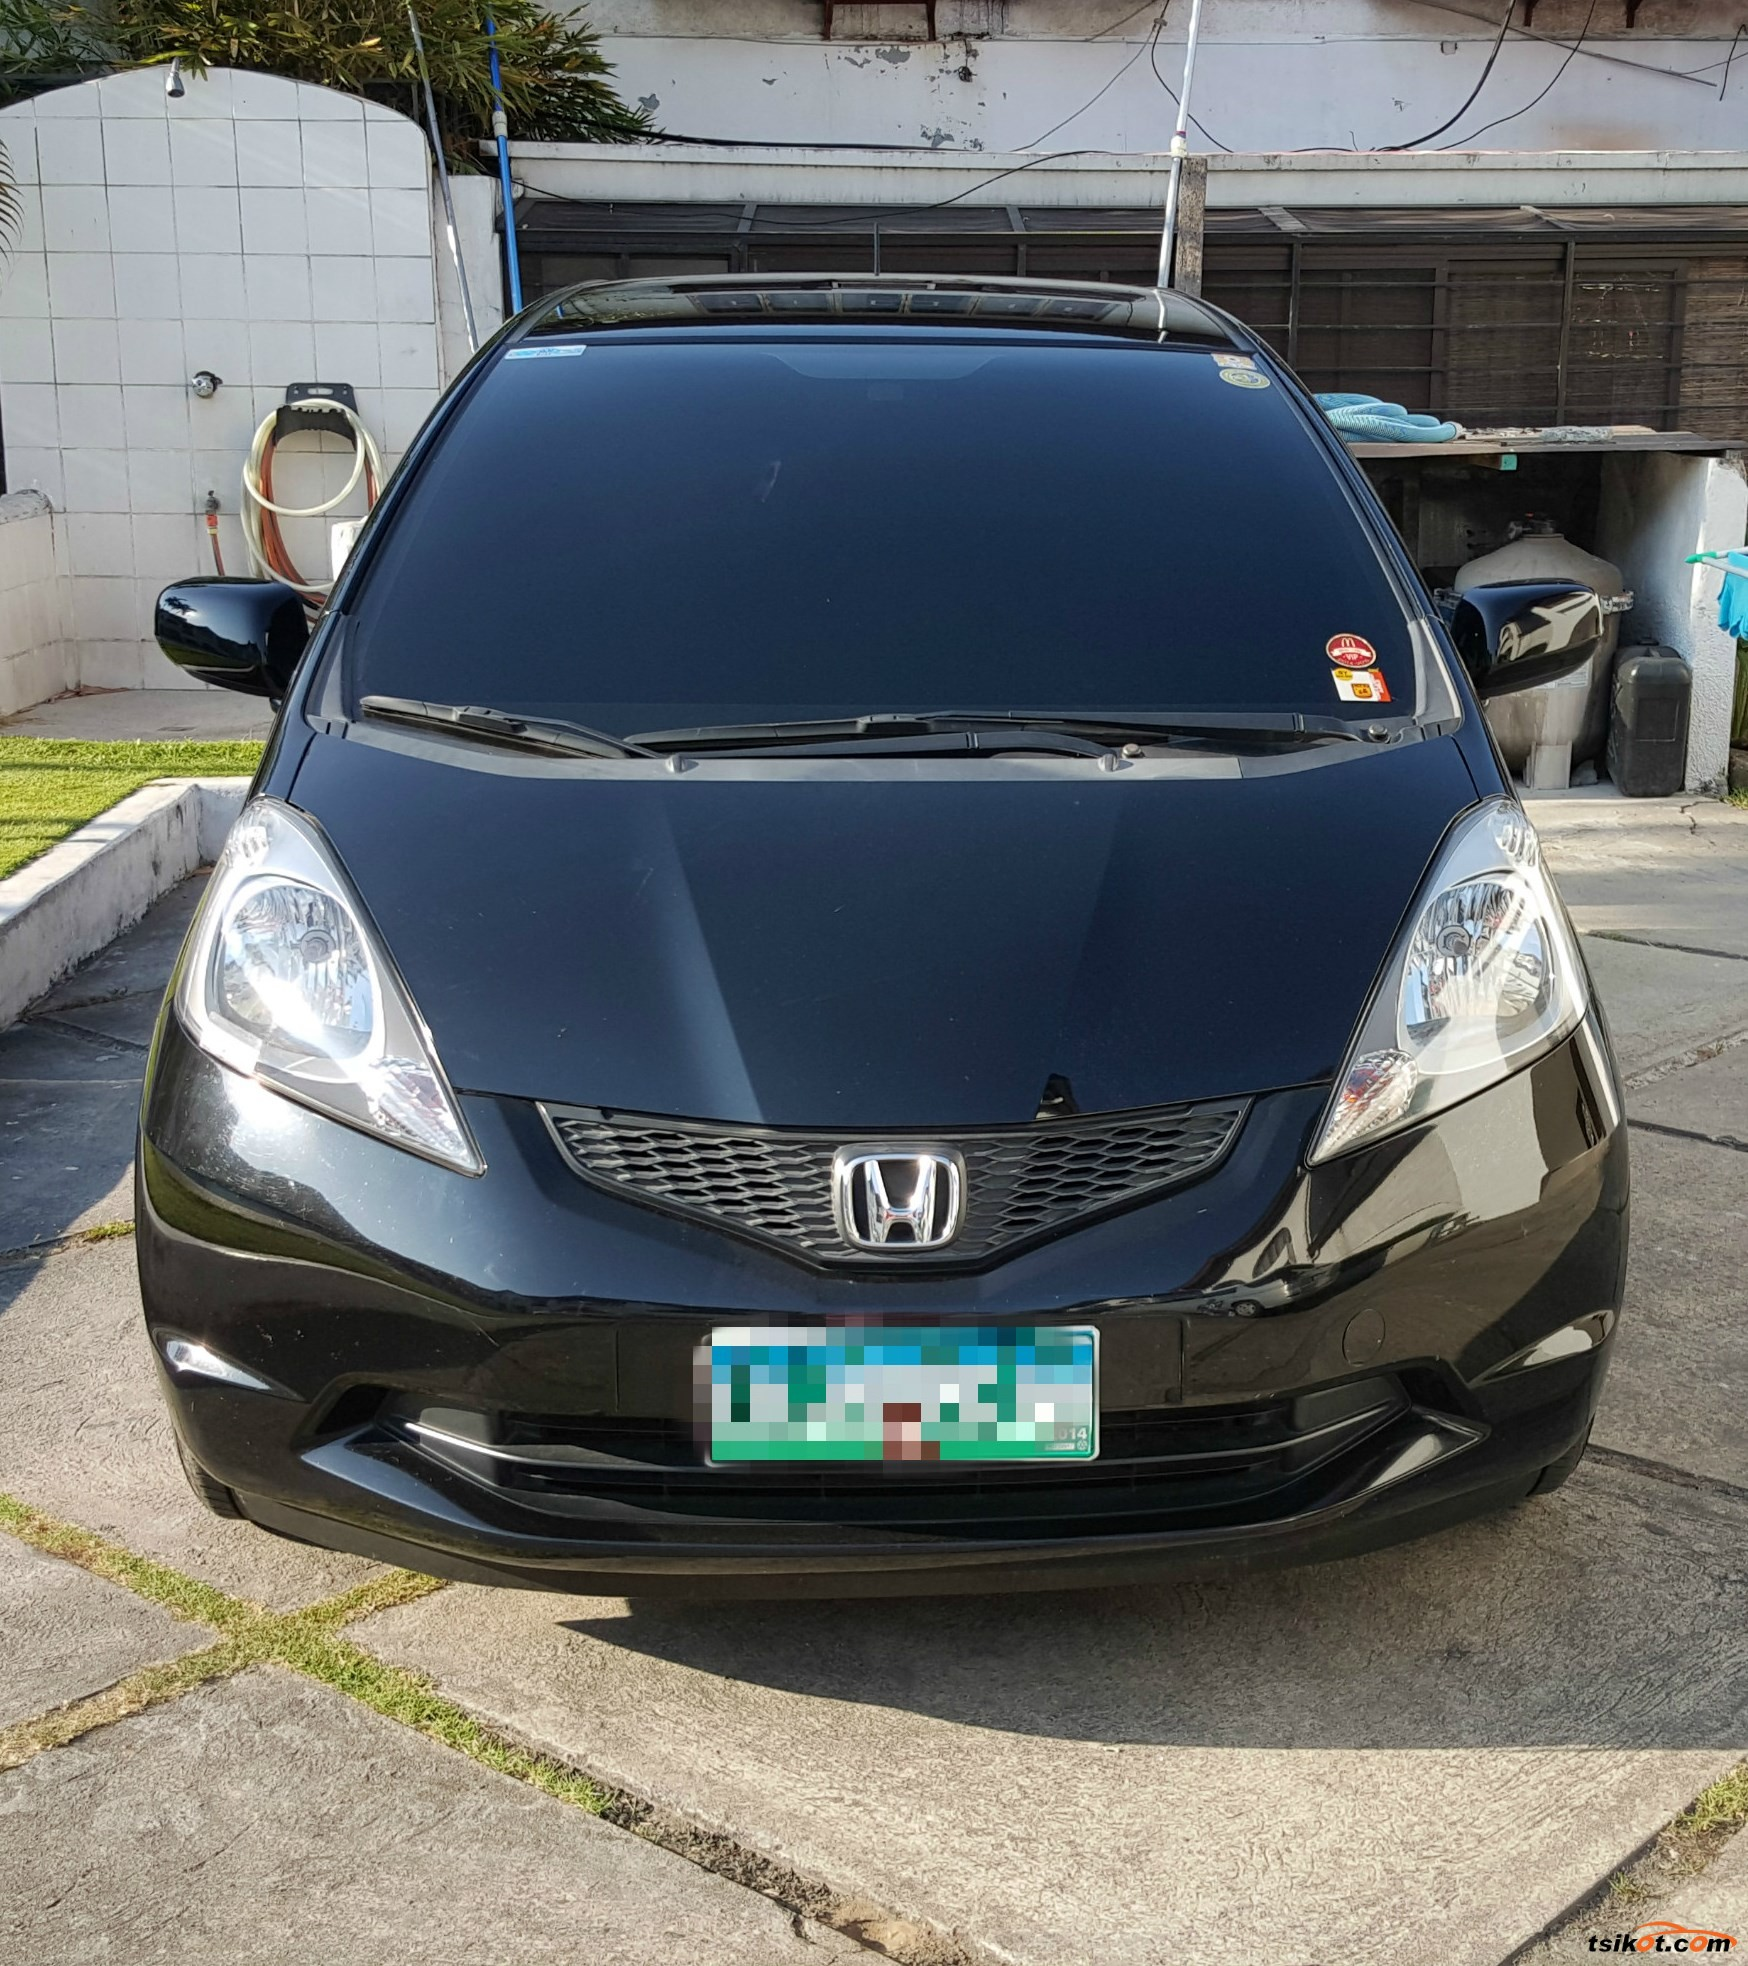 honda jazz 2010 car for sale metro manila. Black Bedroom Furniture Sets. Home Design Ideas